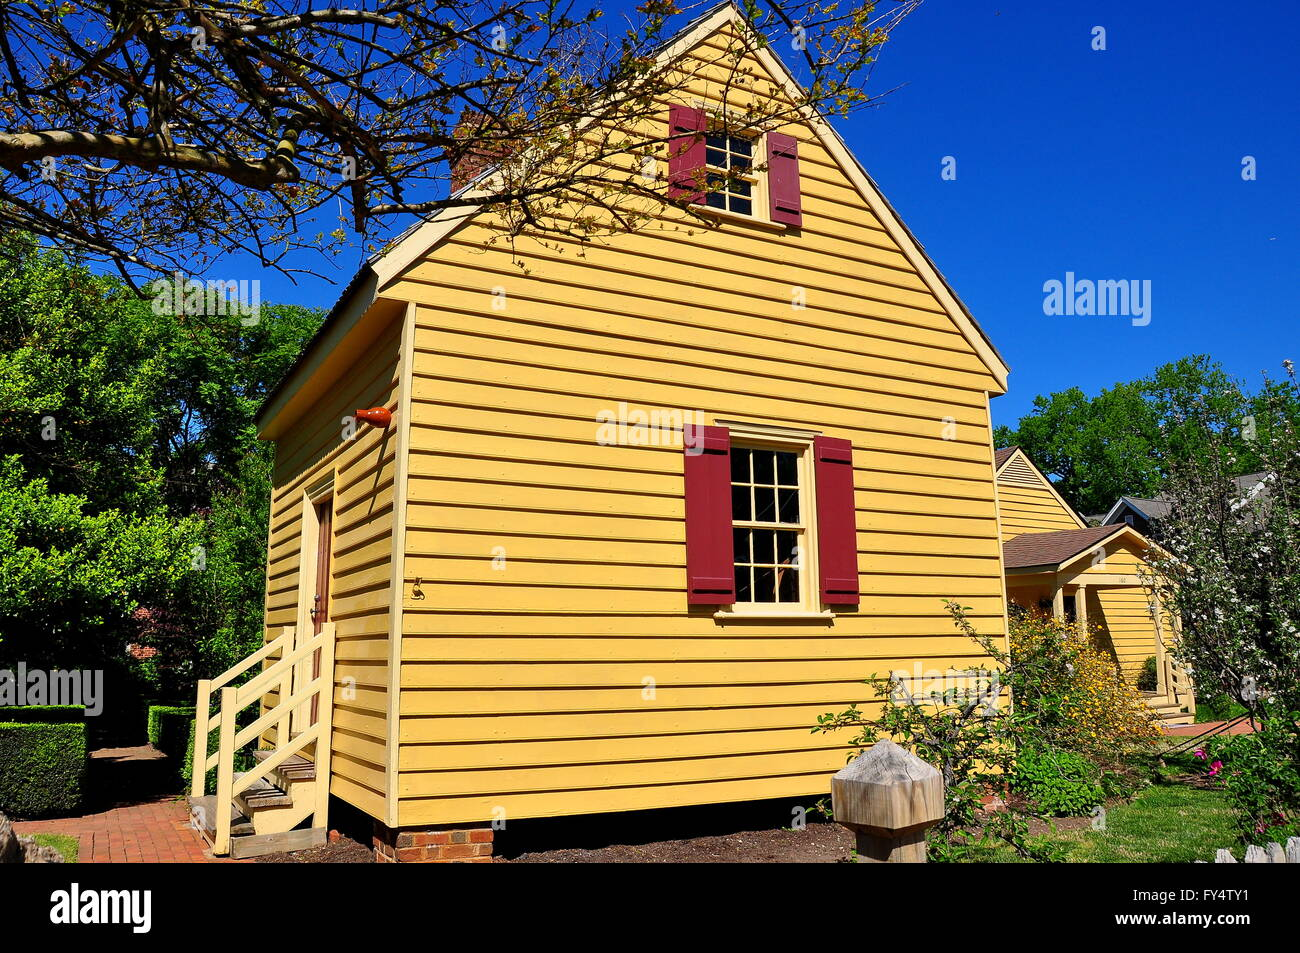 Raleigh, North Carolina: 1779 Wooden Clapboard Outer Dependency Building At  The Joel Lane House Museum *